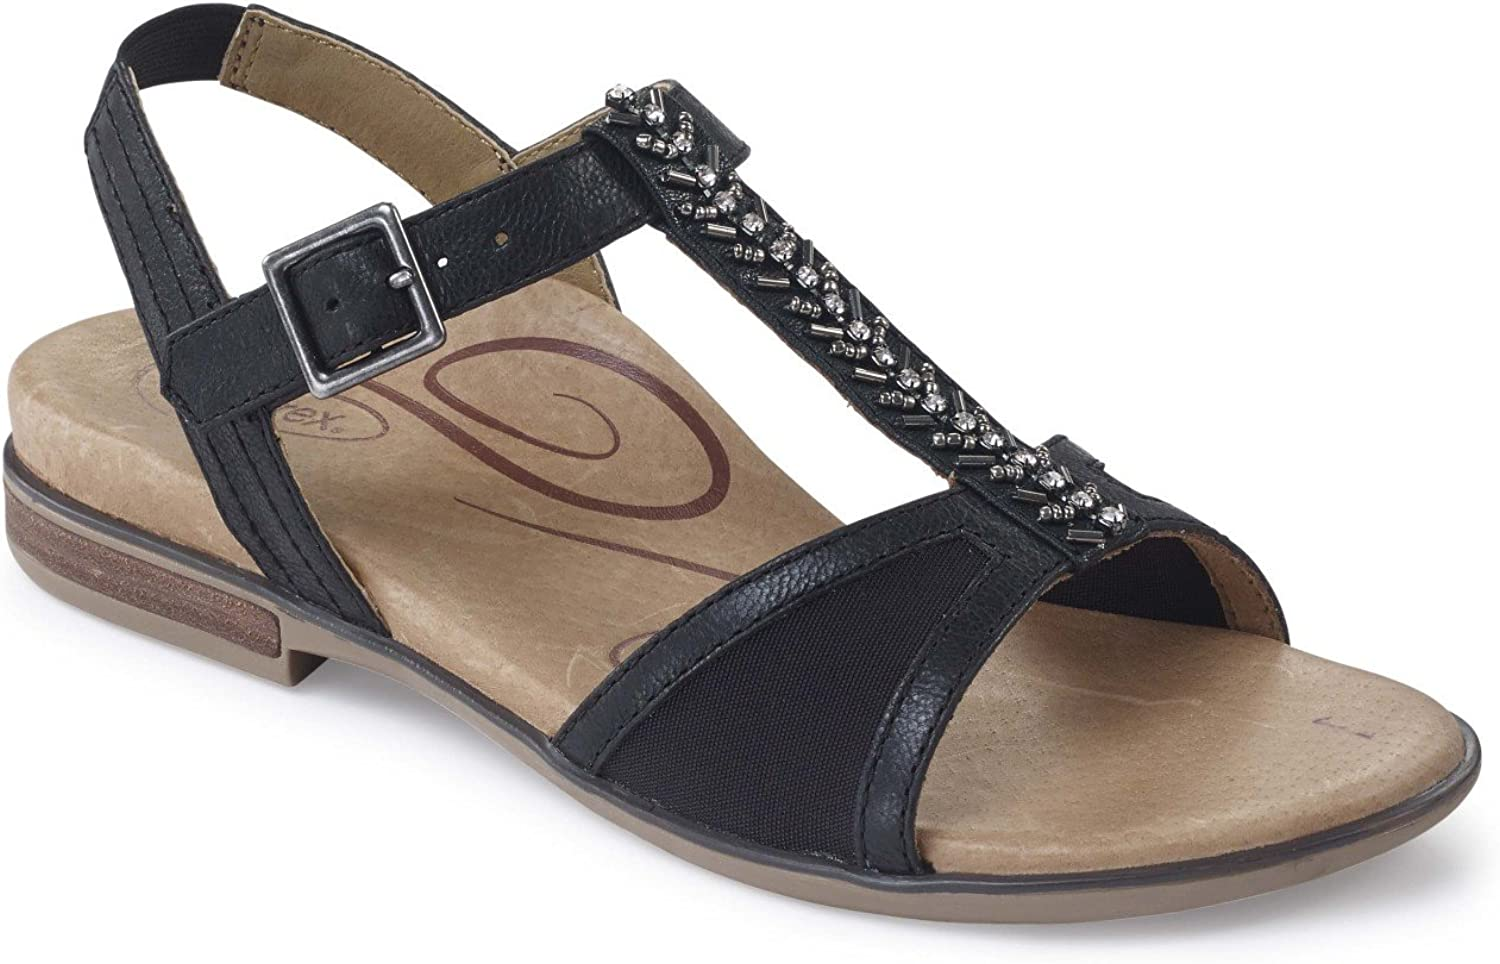 Aetrex Womens Leanna Leather Open Toe Casual T-Strap Sandals